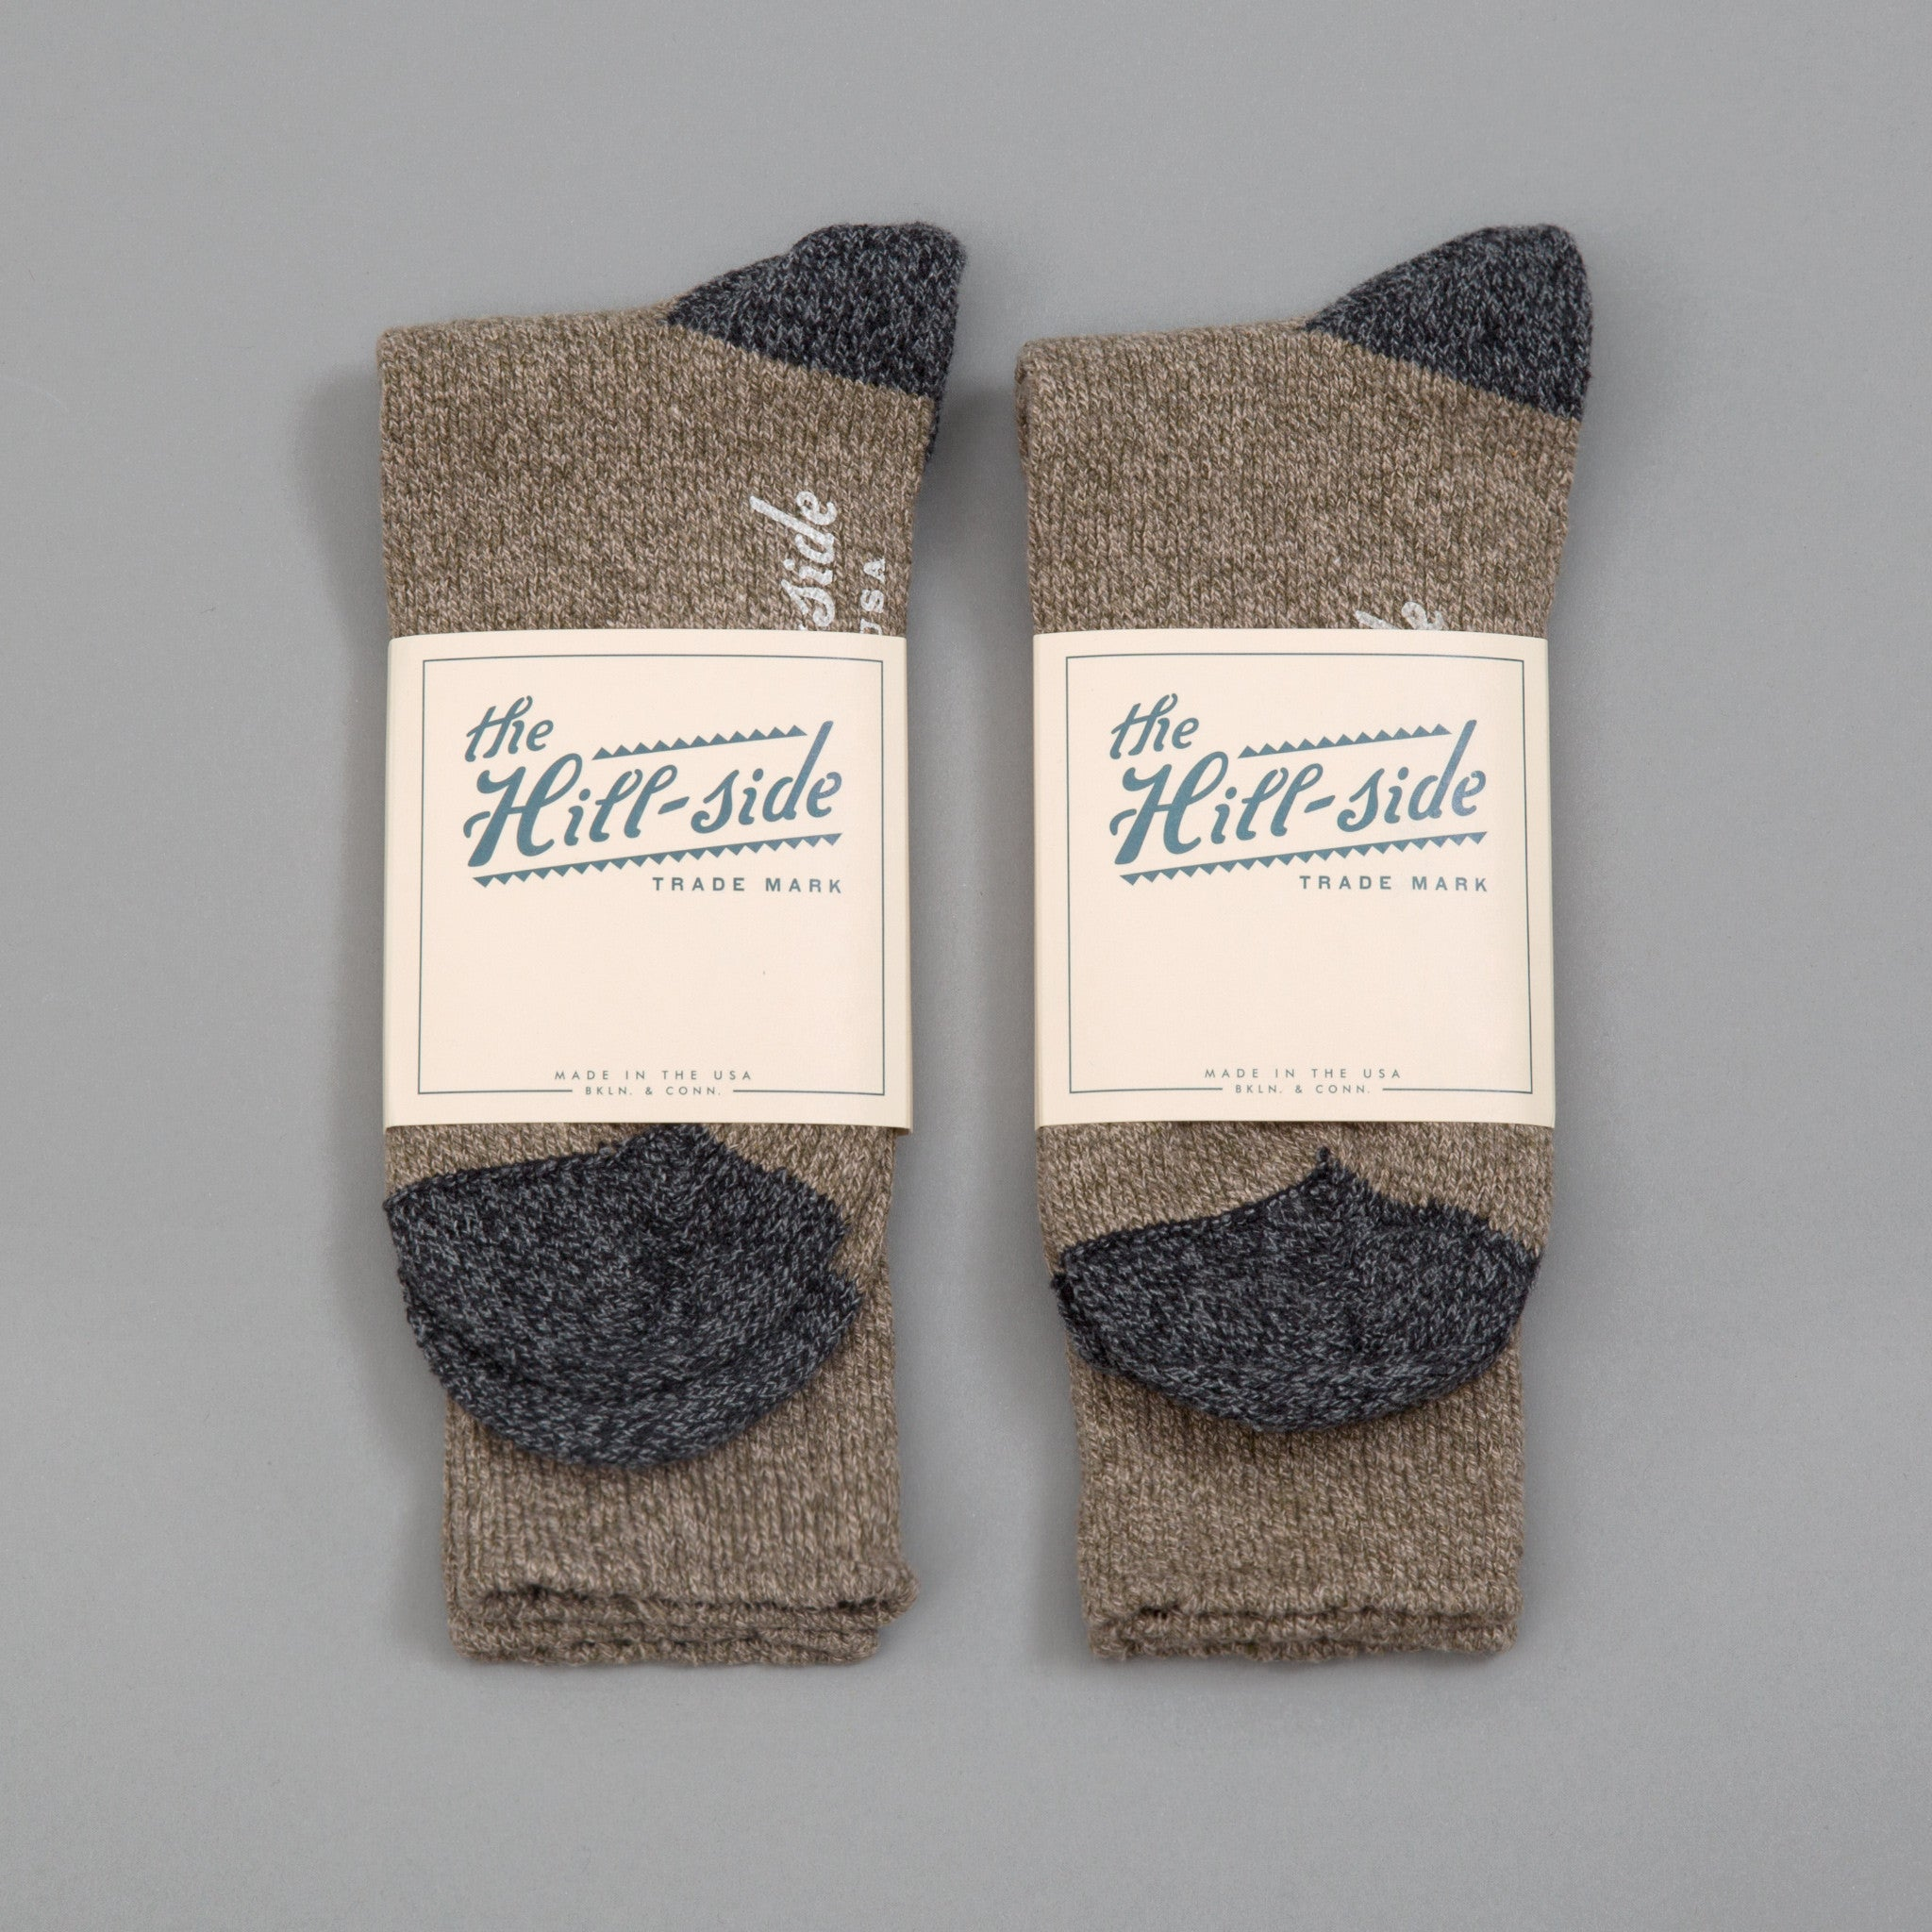 The Hill-Side - 2-Pack Socks, Olive - SX10-02 - image 1